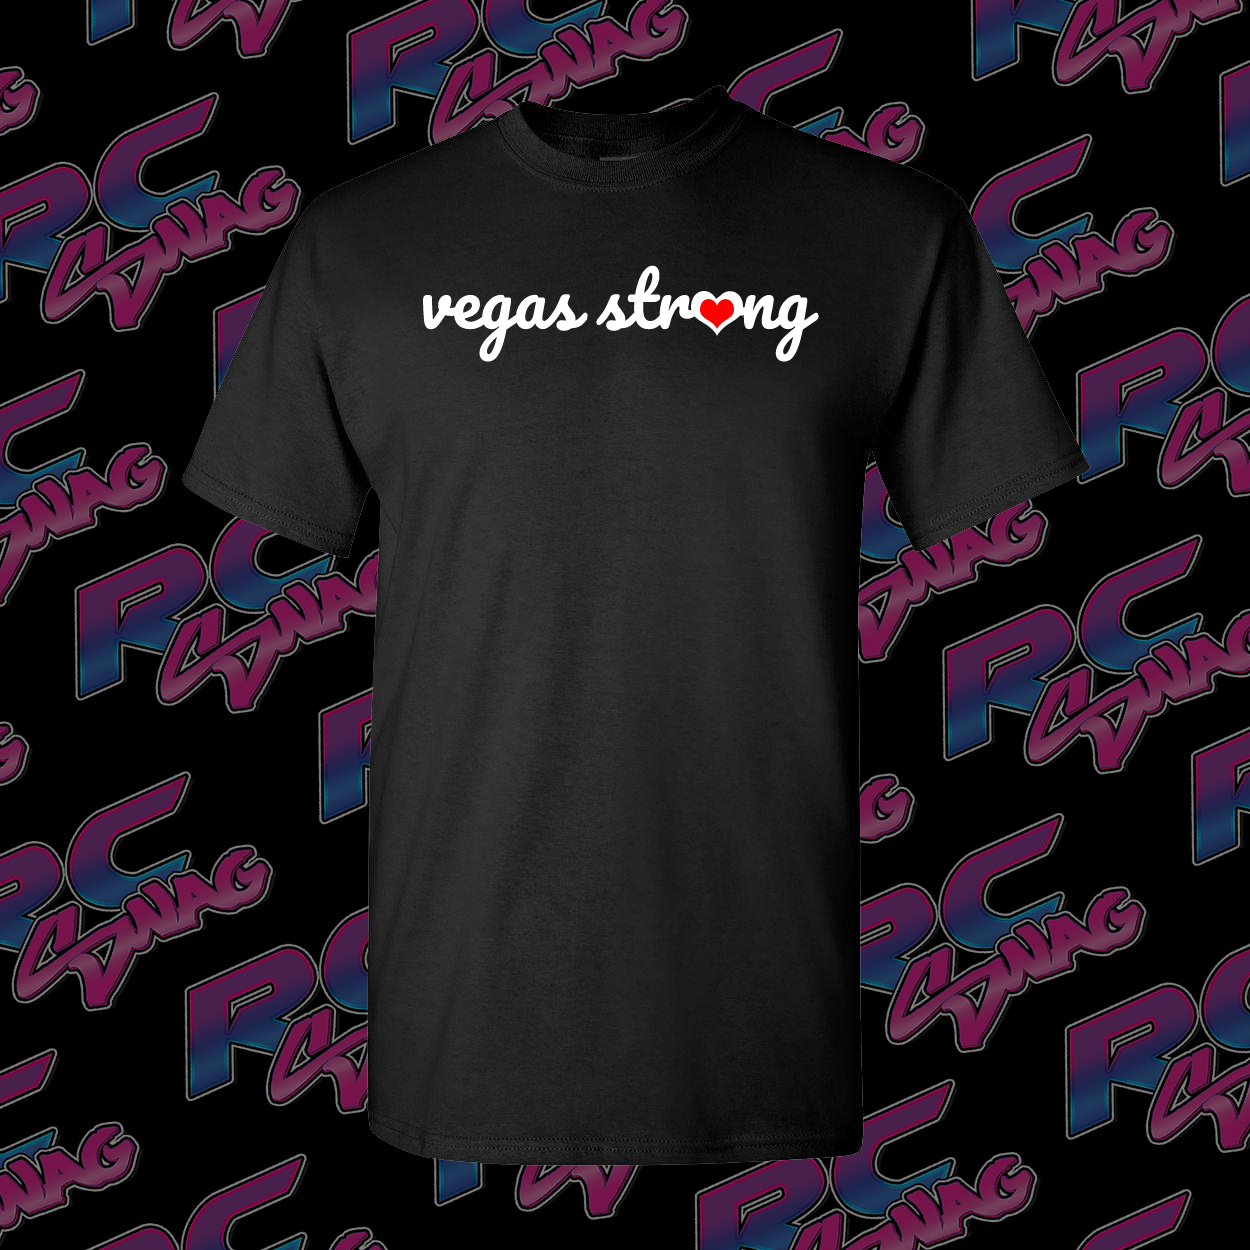 Vegas Strong with Red Heart O - Black Shirt - RC Swag